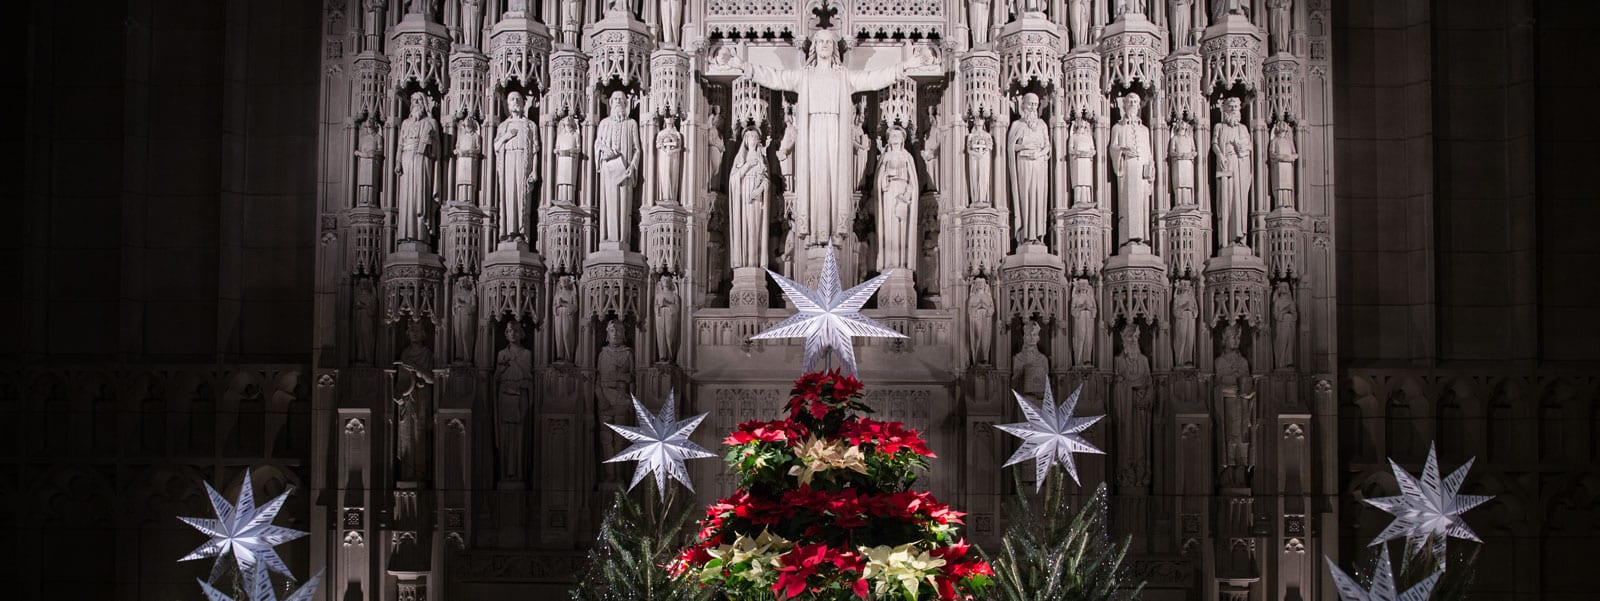 Spend Christmas at Trinity Cathedral in Downtown Cleveland!